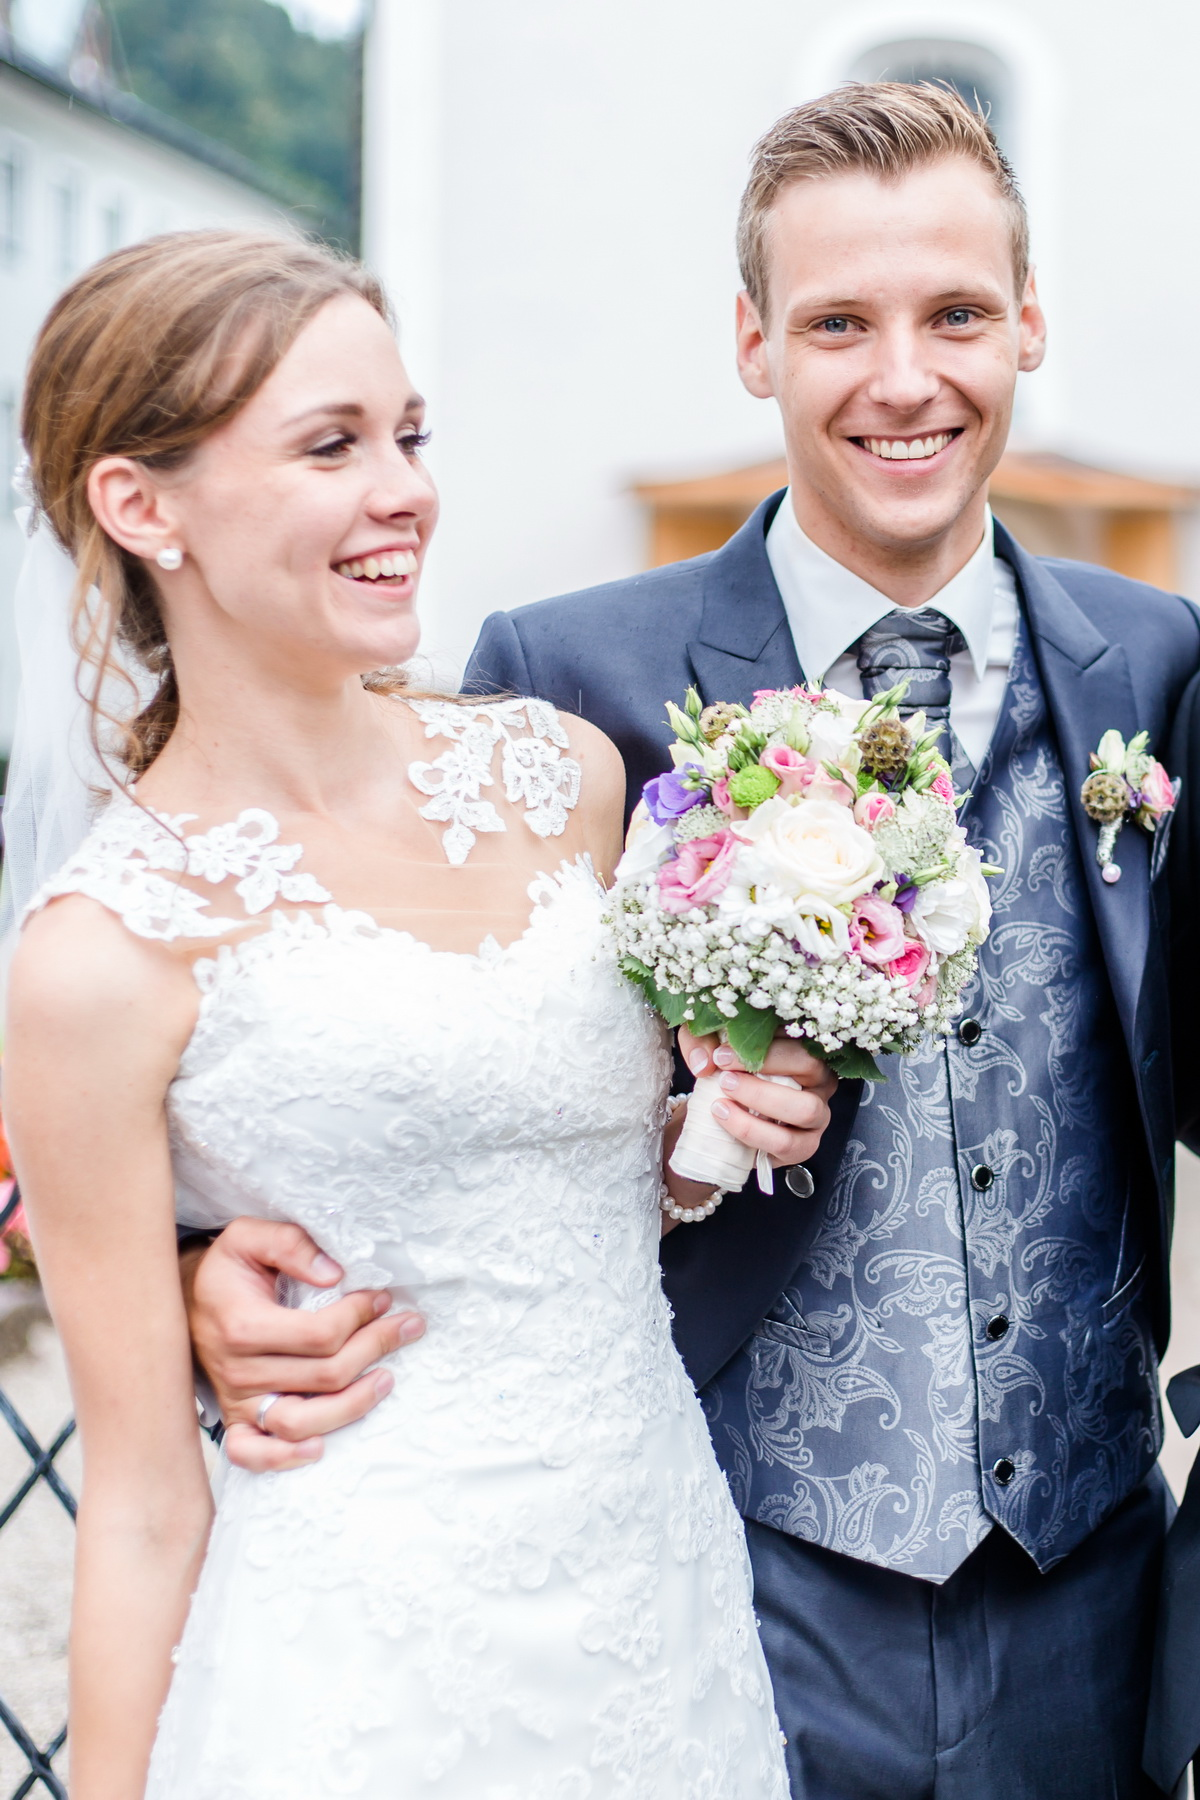 Claudia Sittig Photography - Couple - Hochzeit  Wedding - Selina und Richard 38